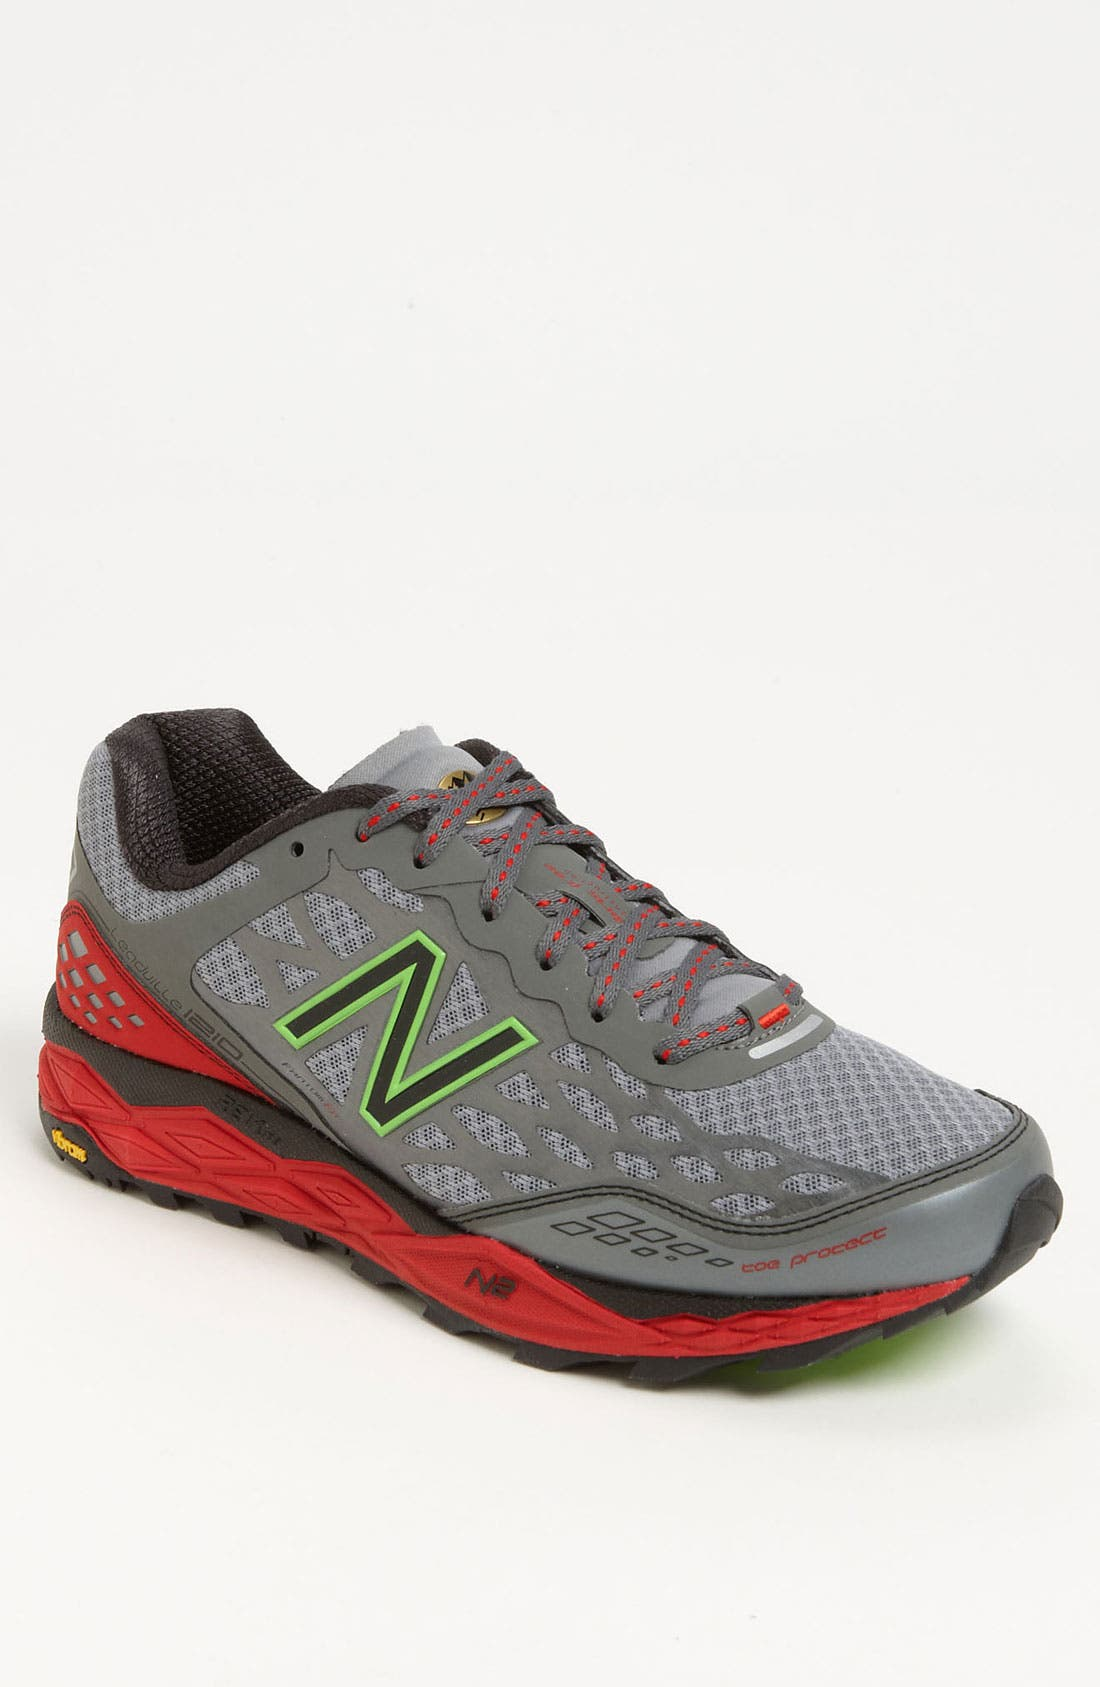 Main Image - New Balance '1210' Trail Running Shoe (Men)